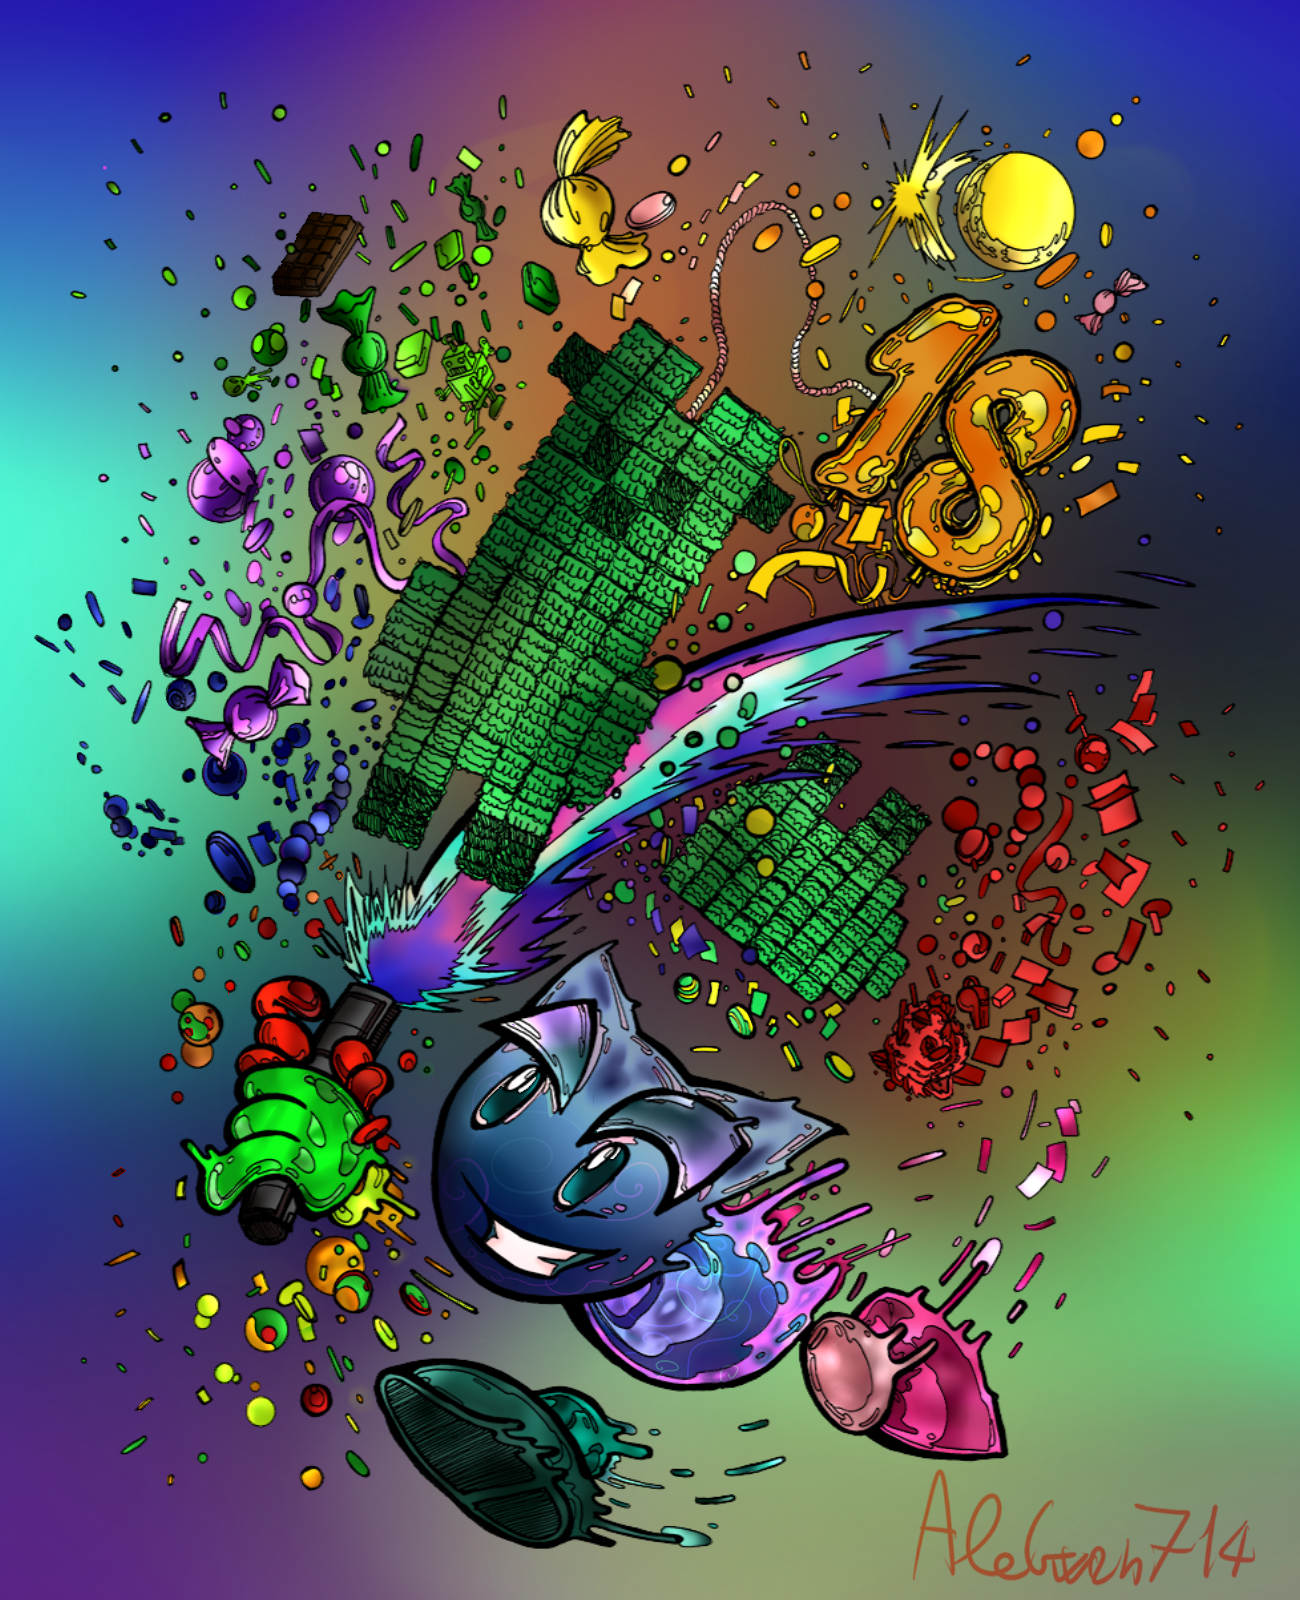 A lot of colours and 18 years of DA by AleGwen714 on DeviantArt